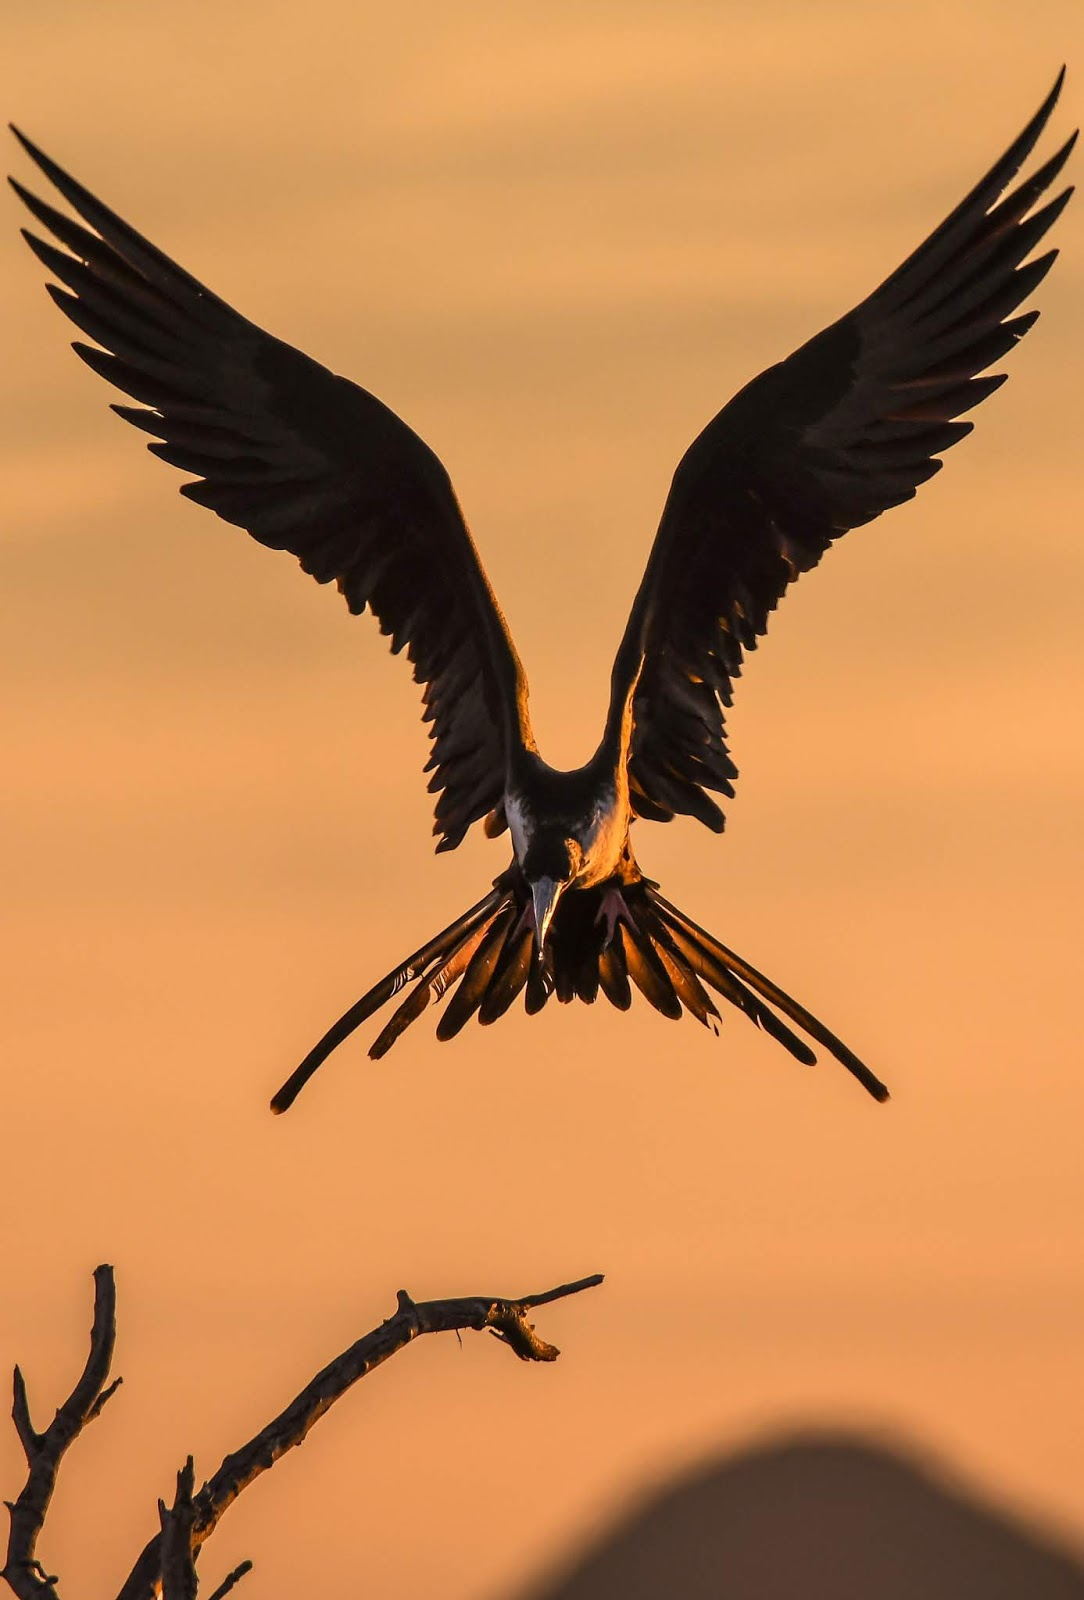 Amazing bird sunset landing photo.